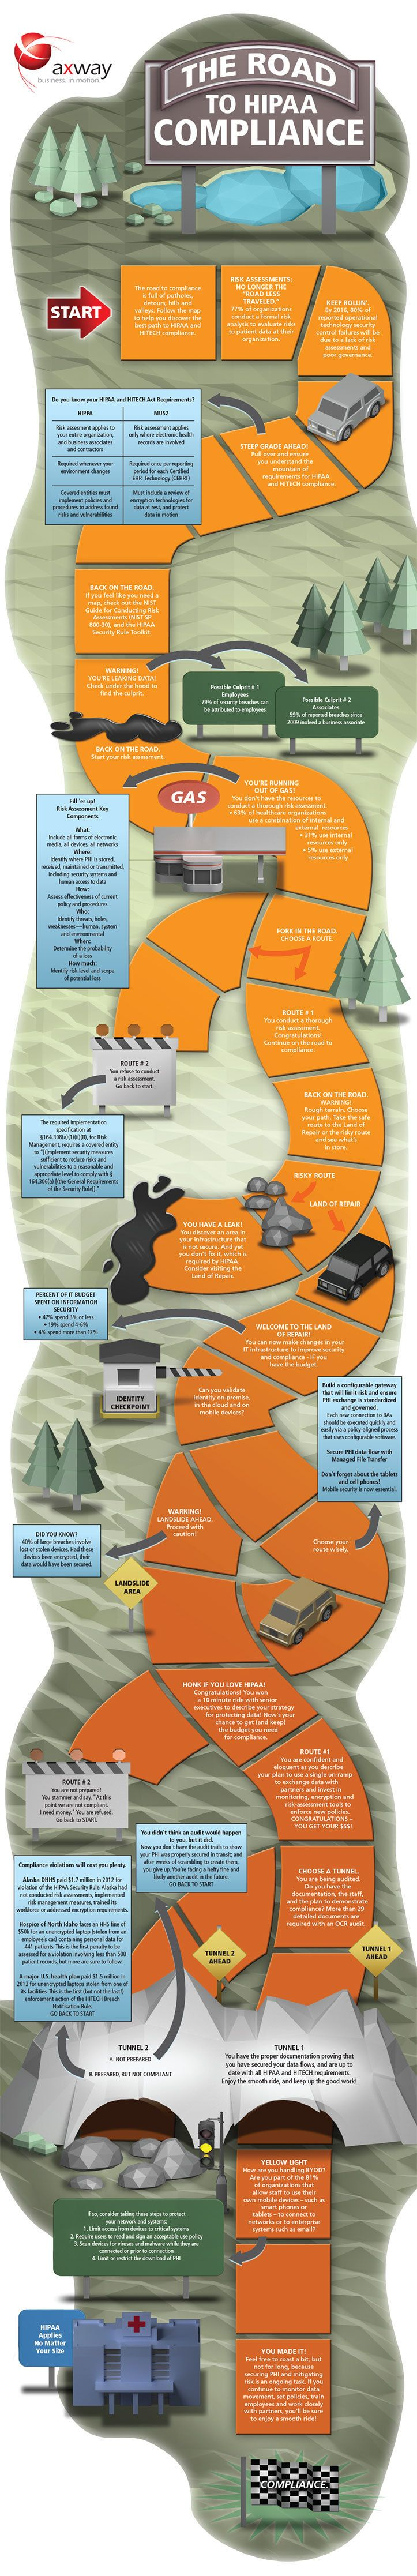 INFOGRAPHIC The Road To HIPAA Compliance 64